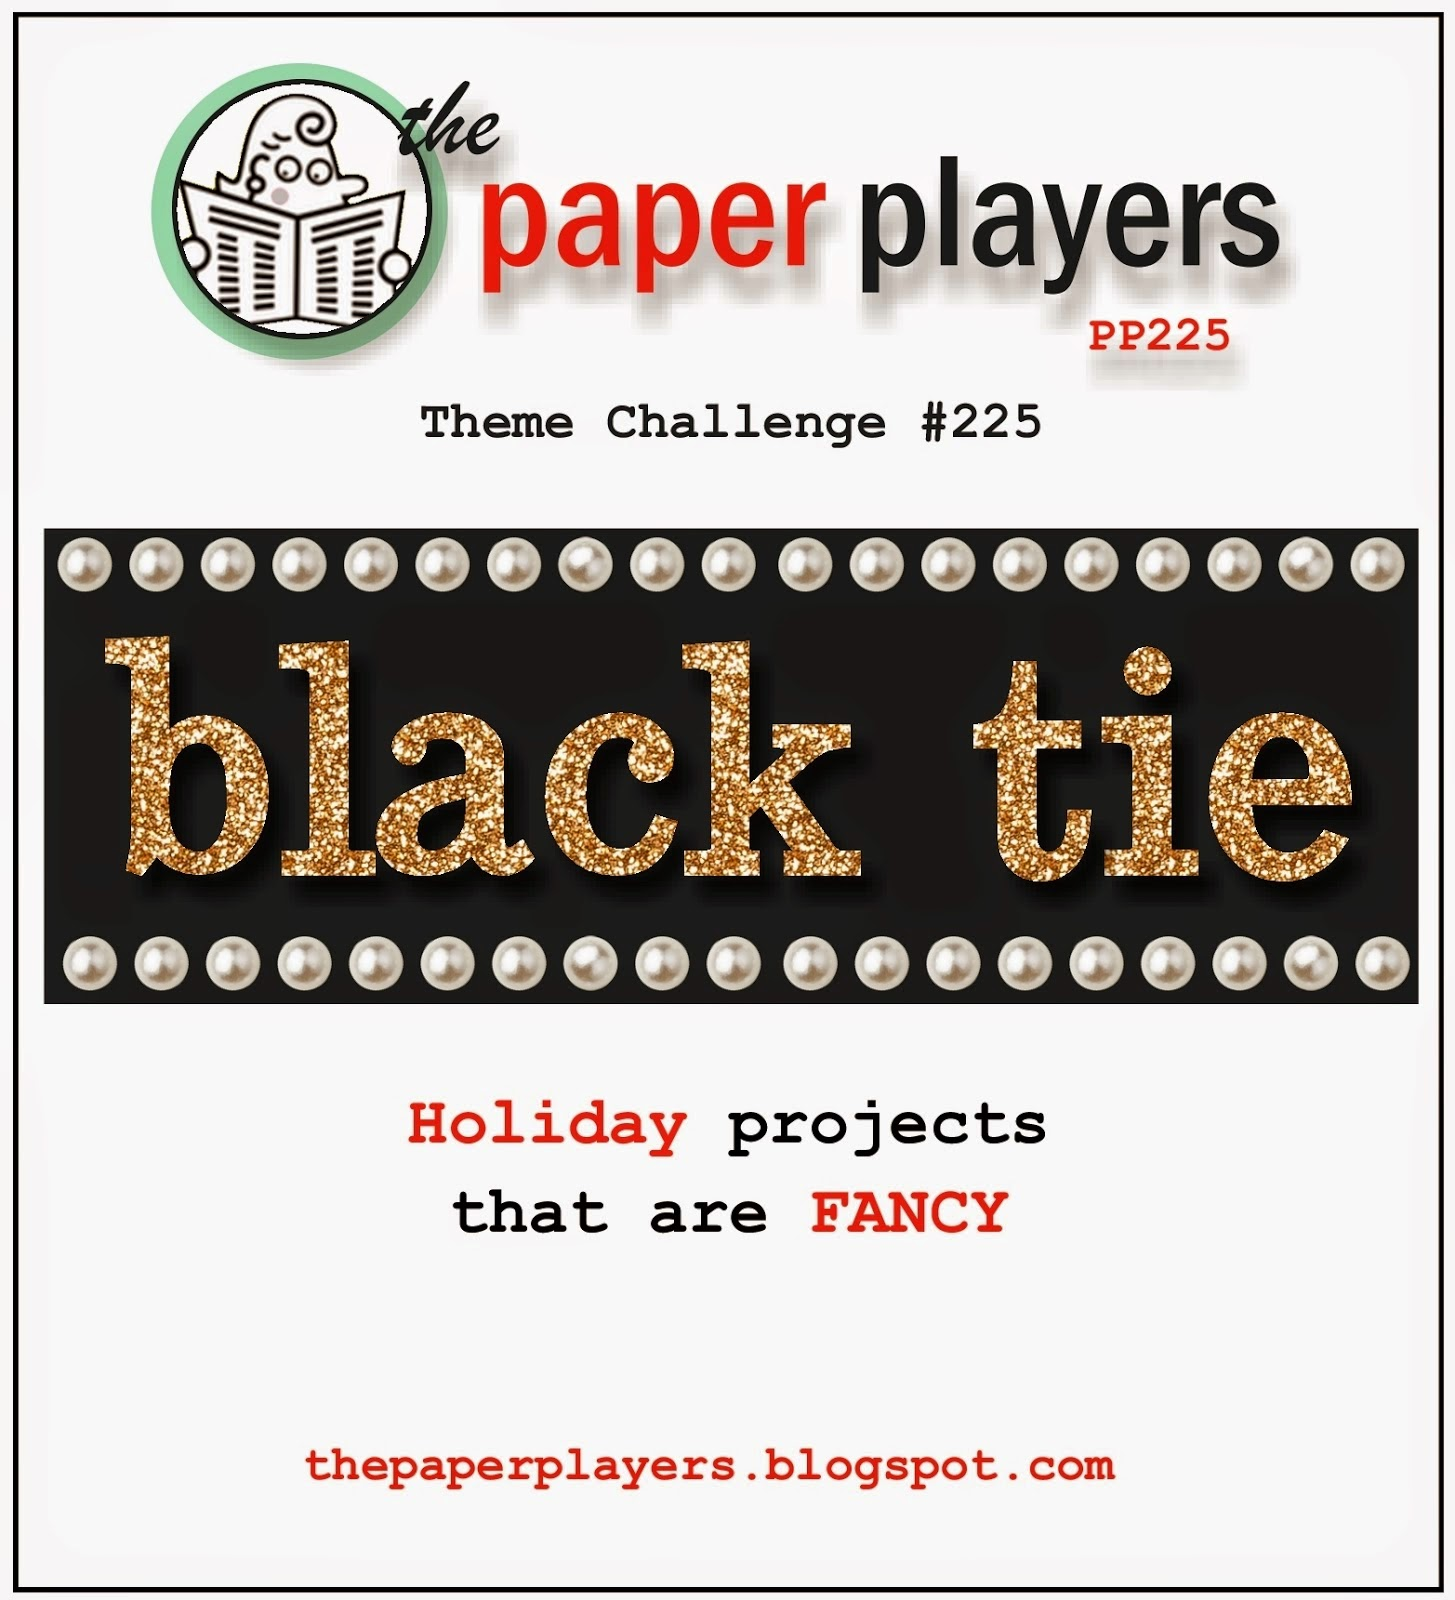 http://thepaperplayers.blogspot.com.au/2014/12/pp225-black-tie-theme-challenge-from.html